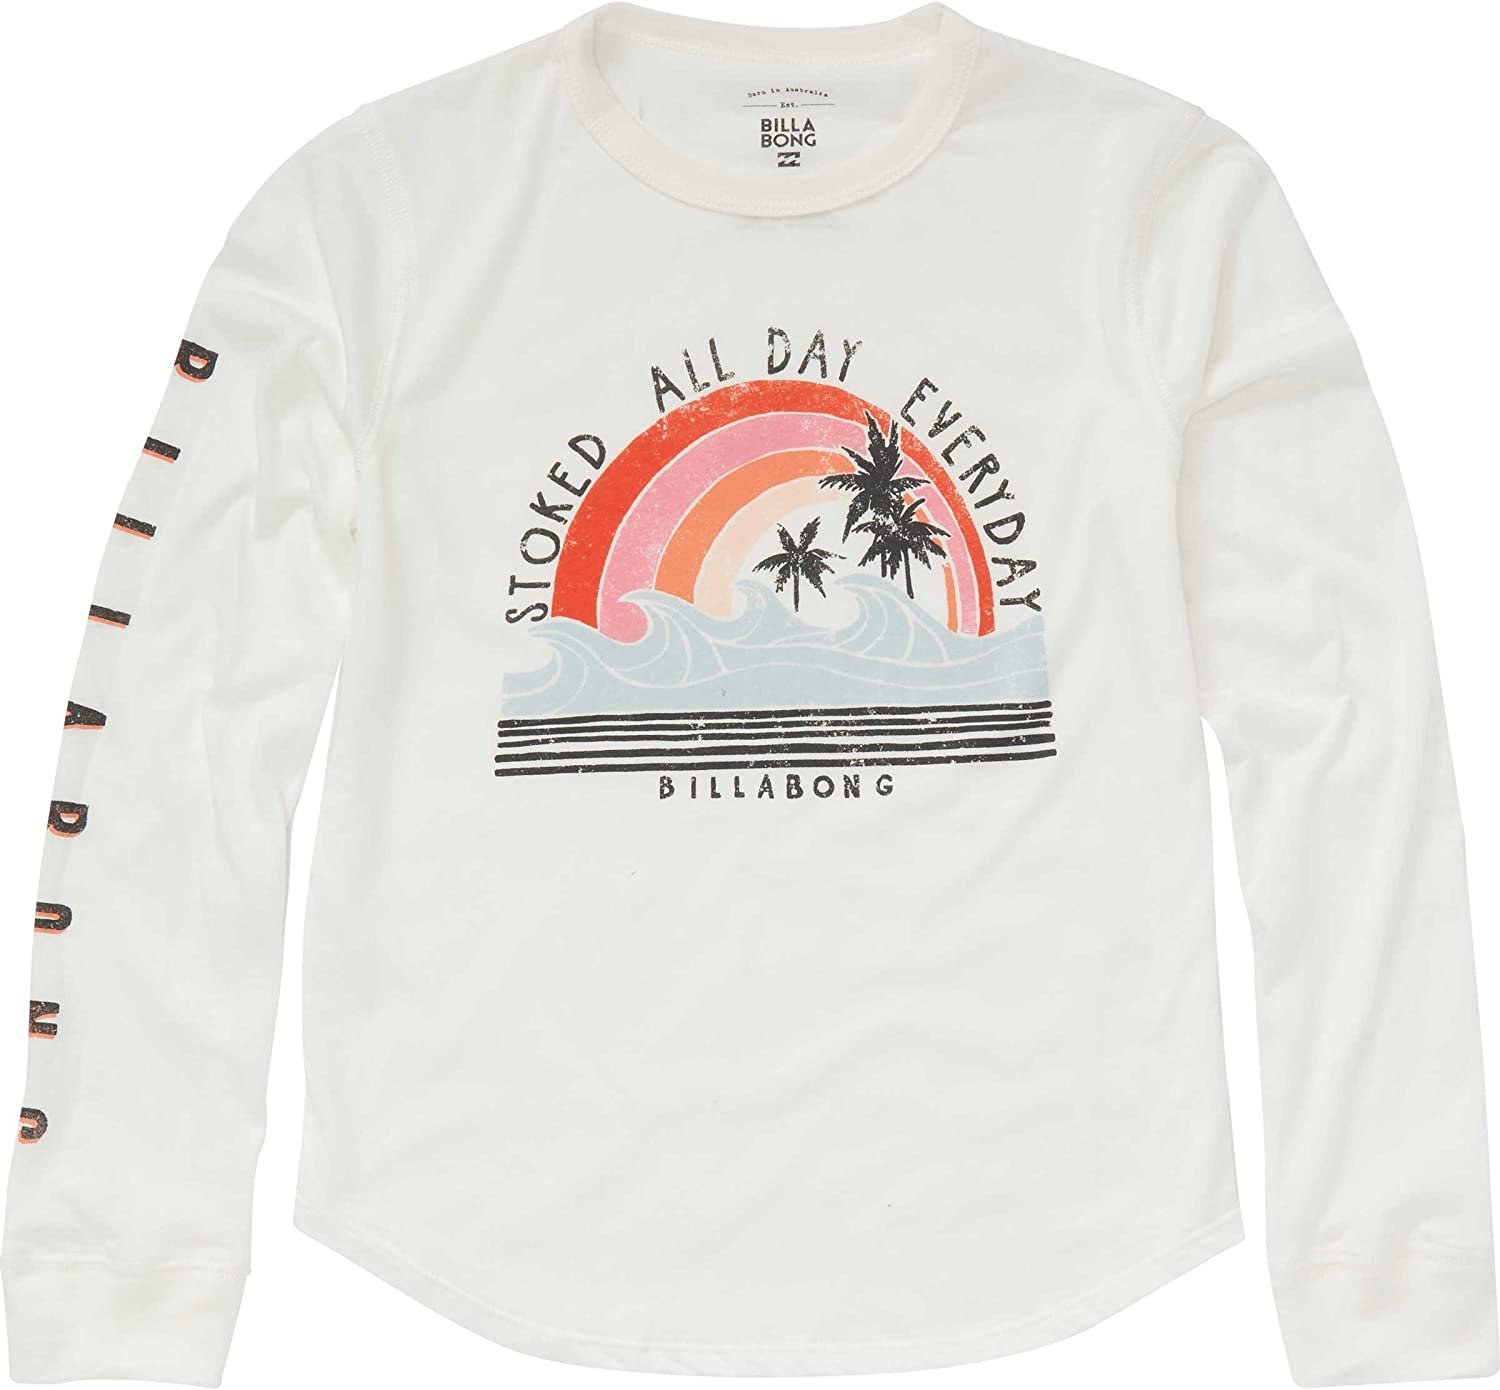 Billabong Girls Big Stoked All Day Long Sleeve Tee, Cool Whip, XXS: Amazon.es: Ropa y accesorios